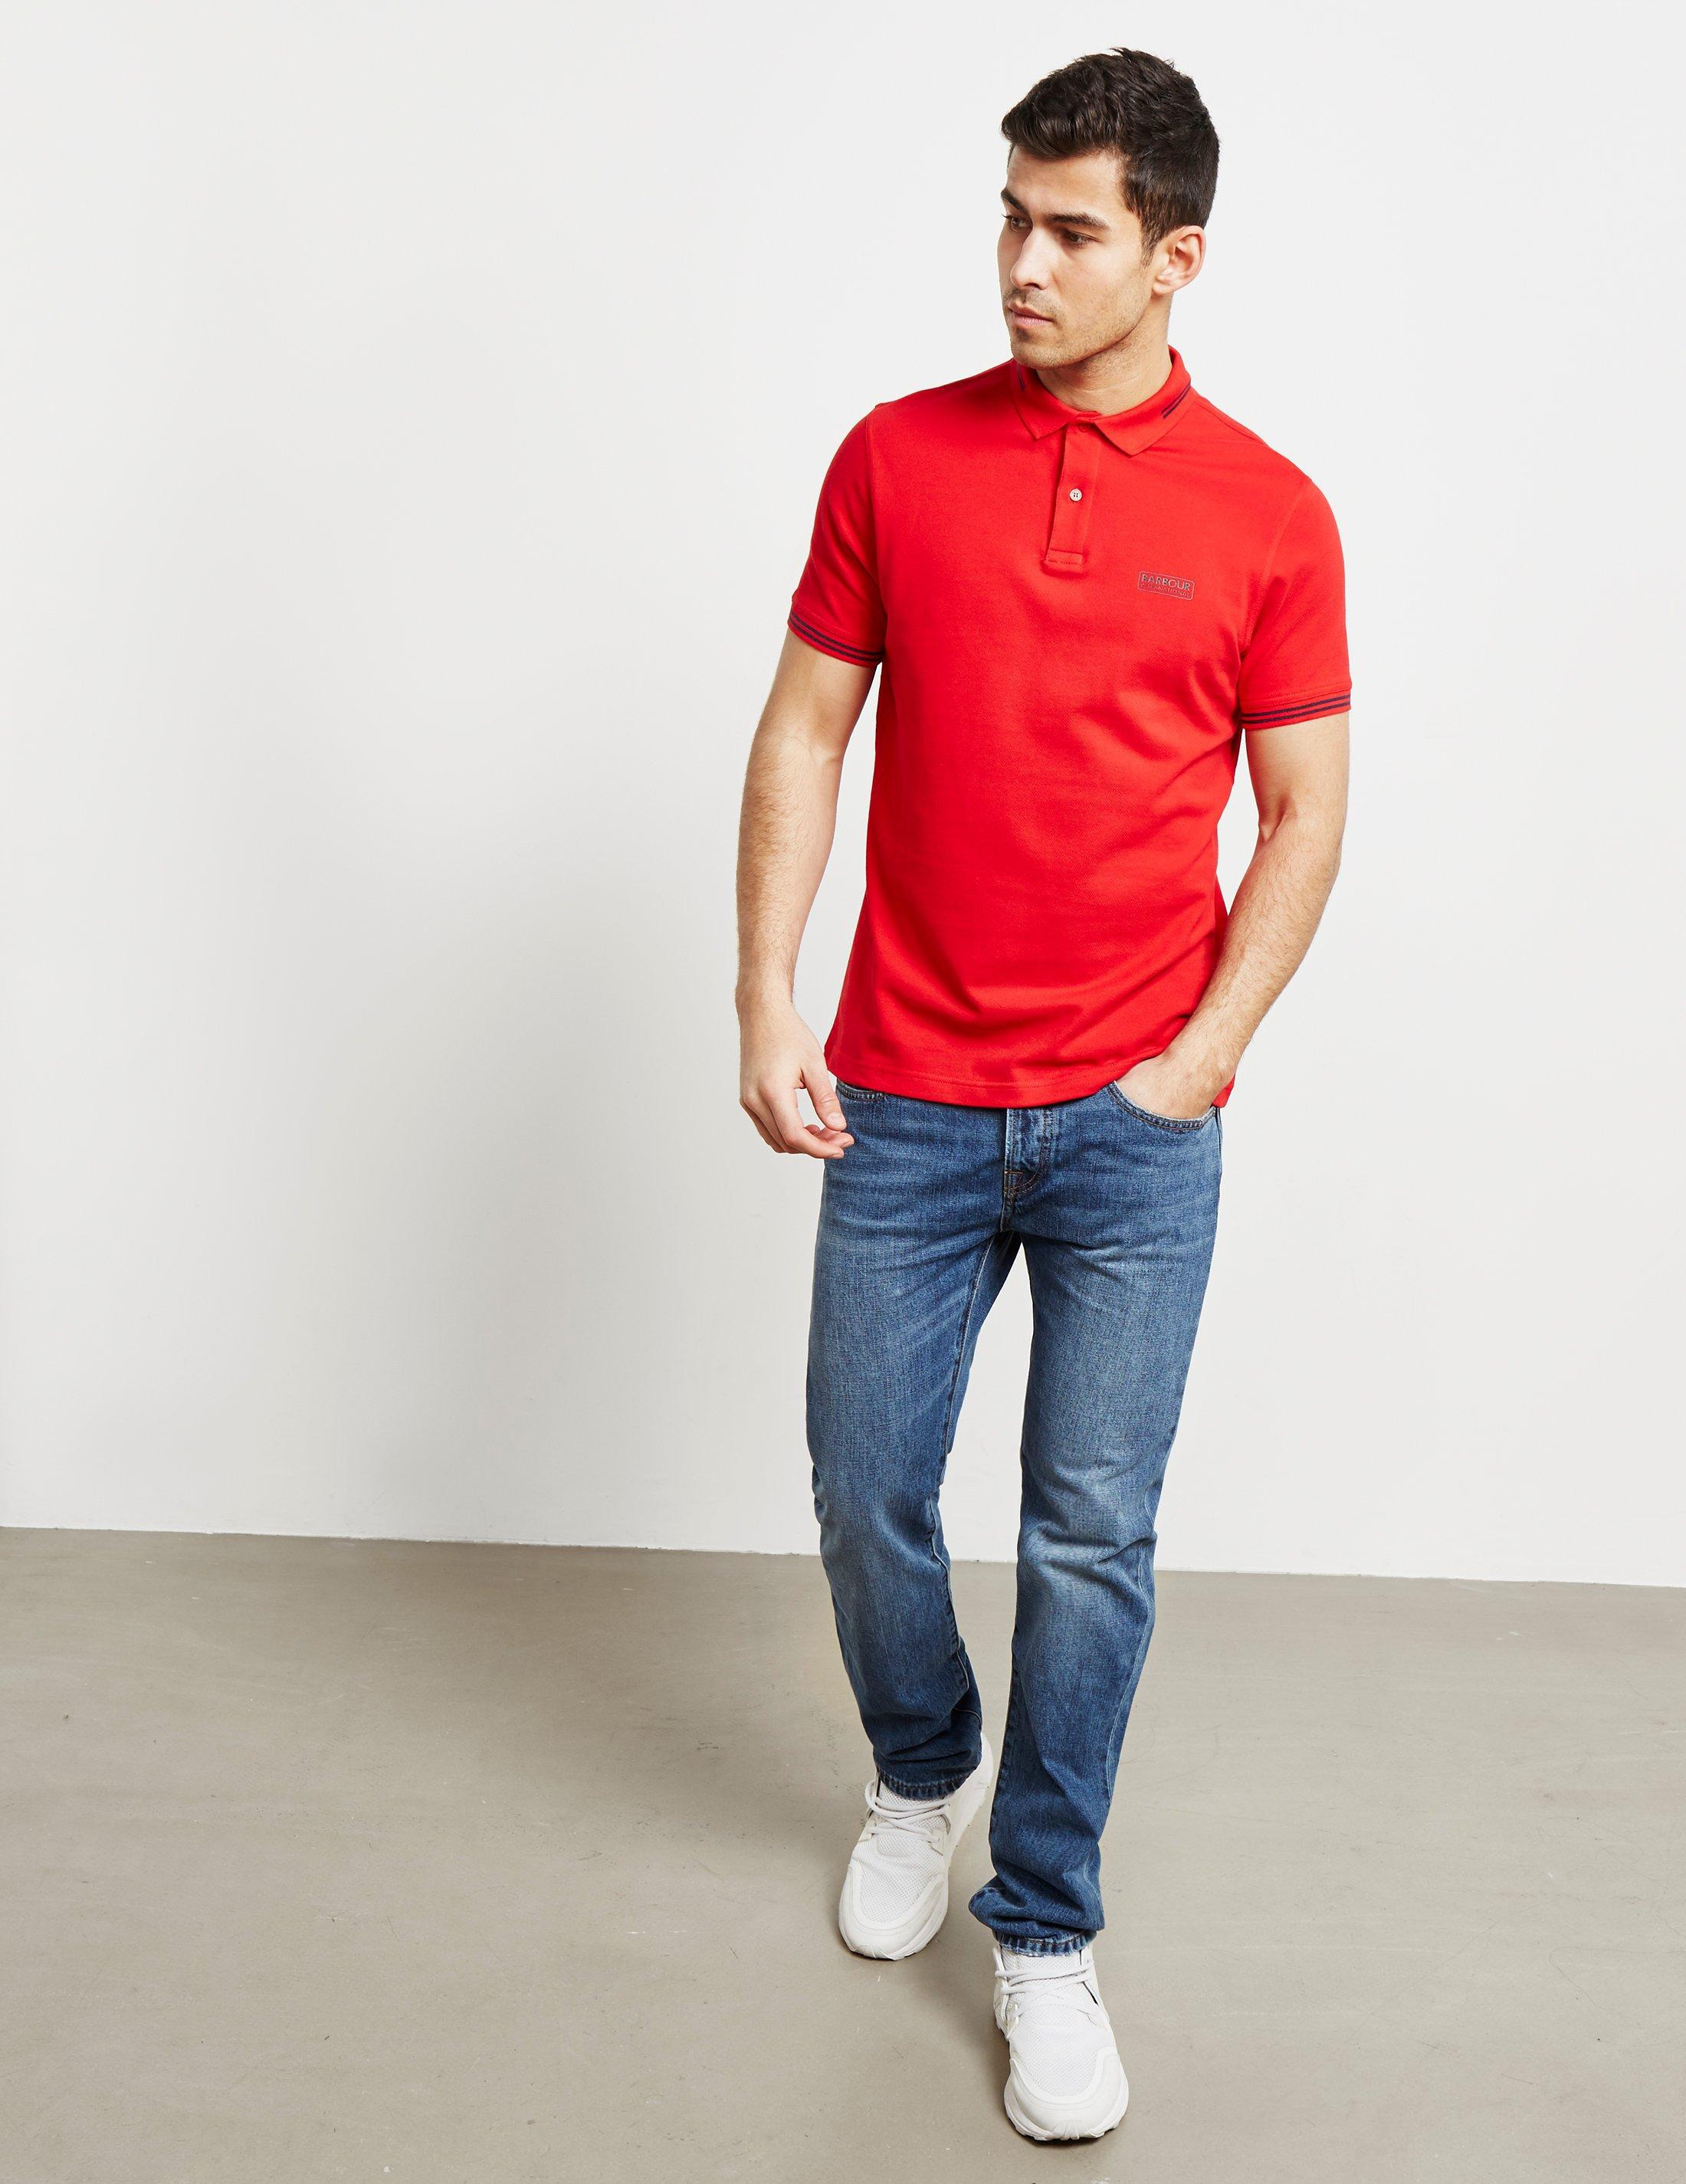 Lyst Barbour Mens International Tipped Polo Shirt Red In Red For Men